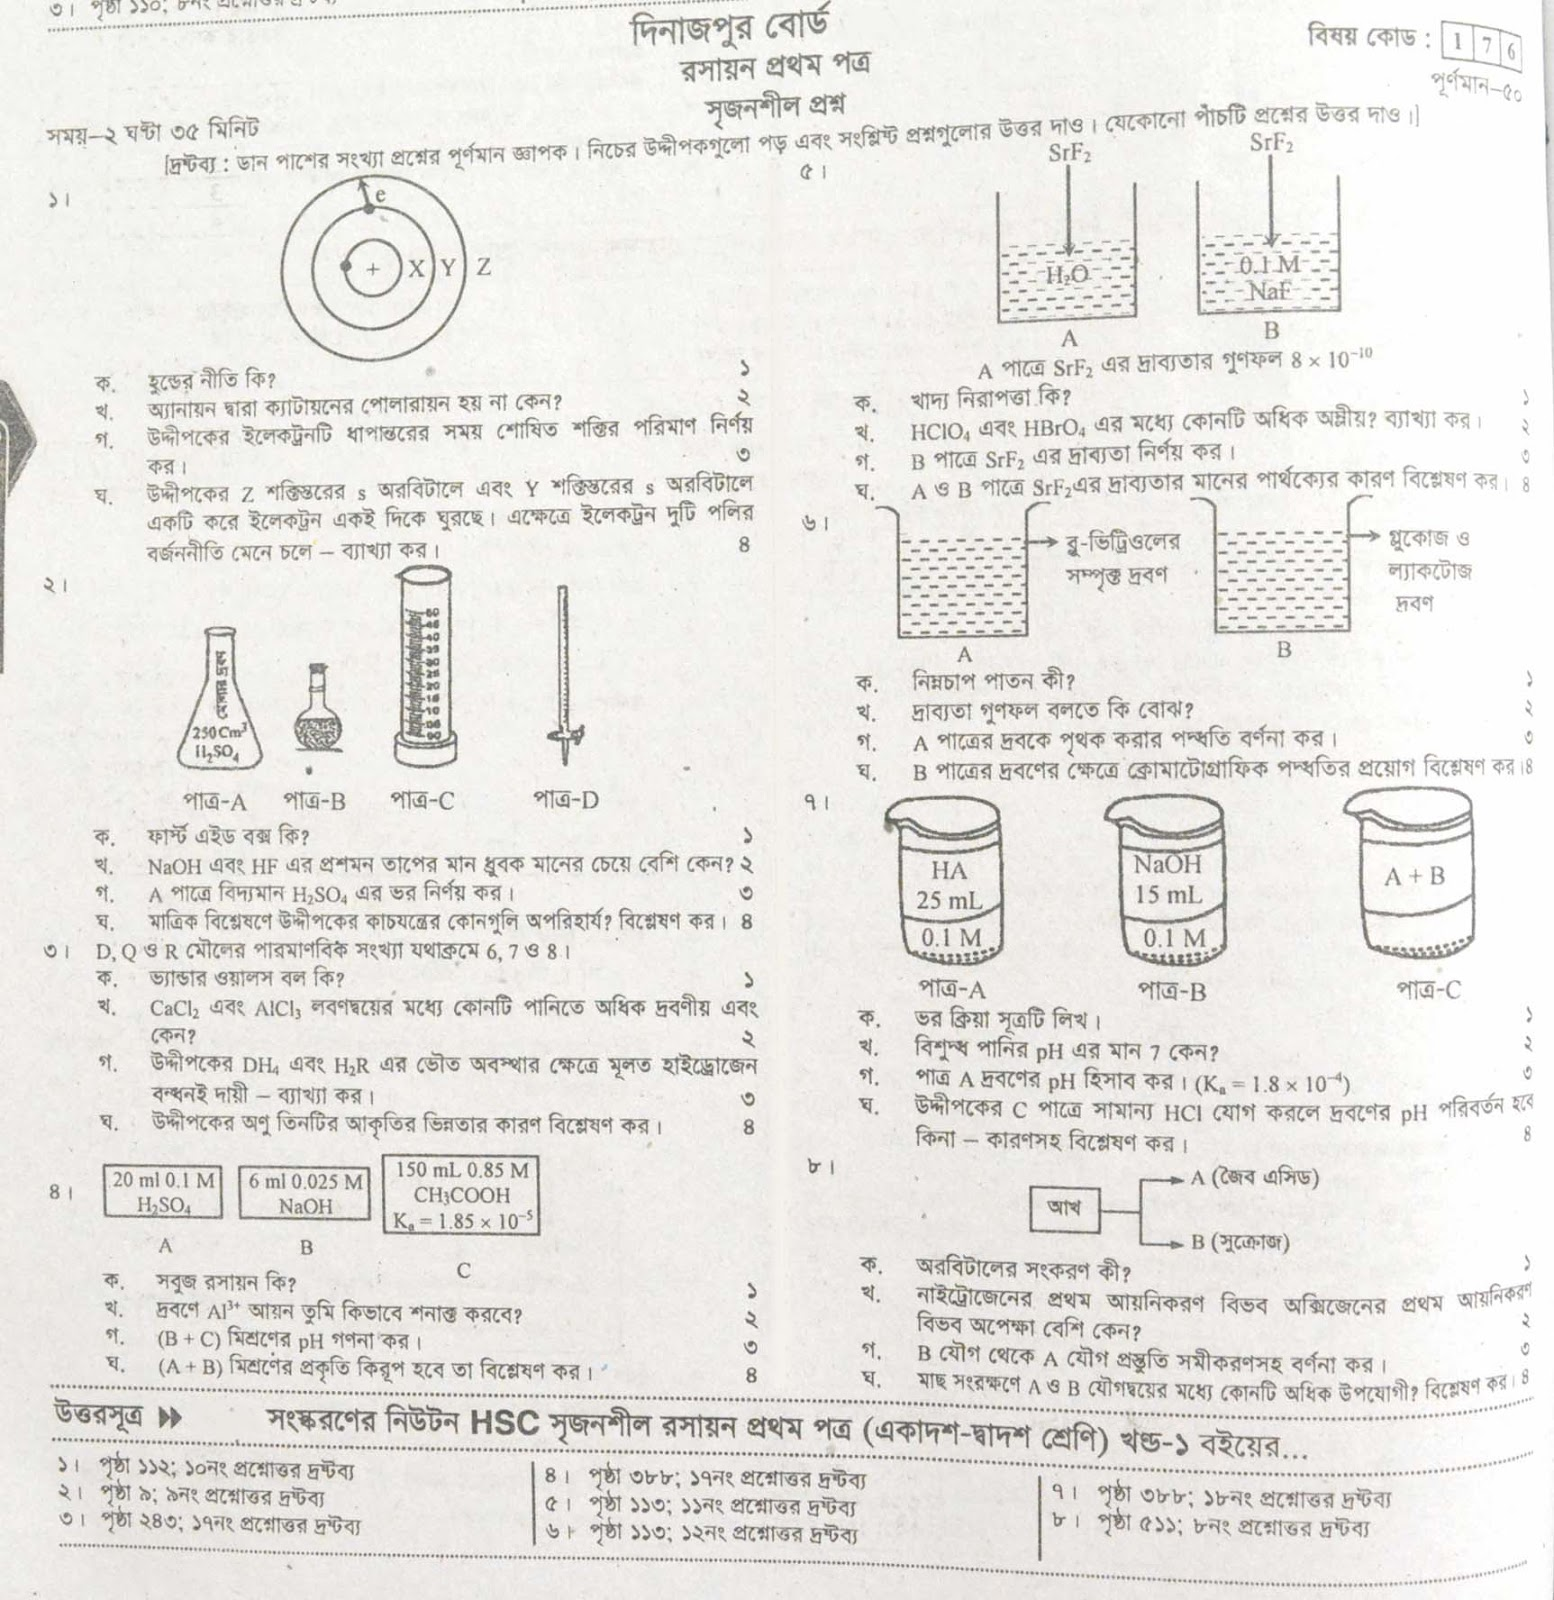 hsc Chemistry 1st Paper suggestion, exam question paper, model question, mcq question, question pattern, preparation for dhaka board, all boards